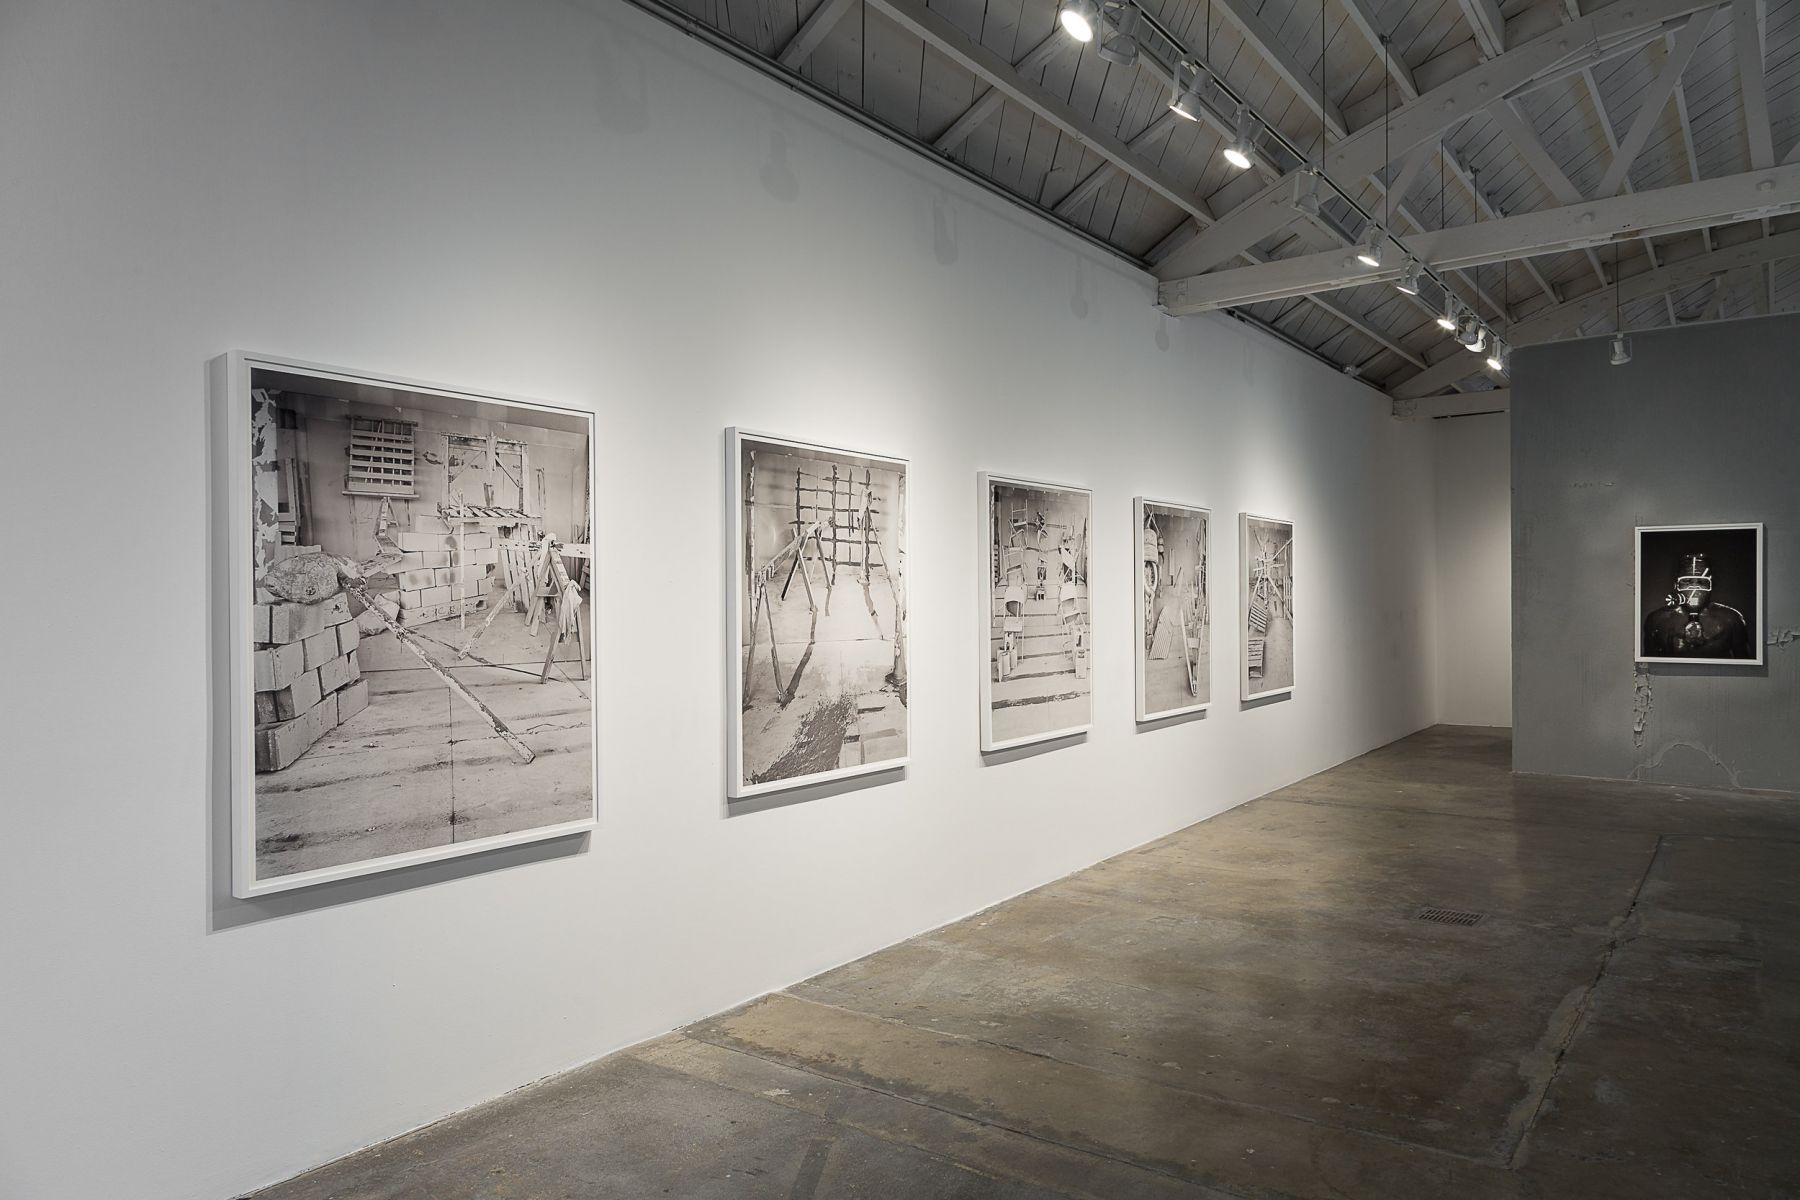 General Song installation view at Klowden Mann Gallery, Los Angeles